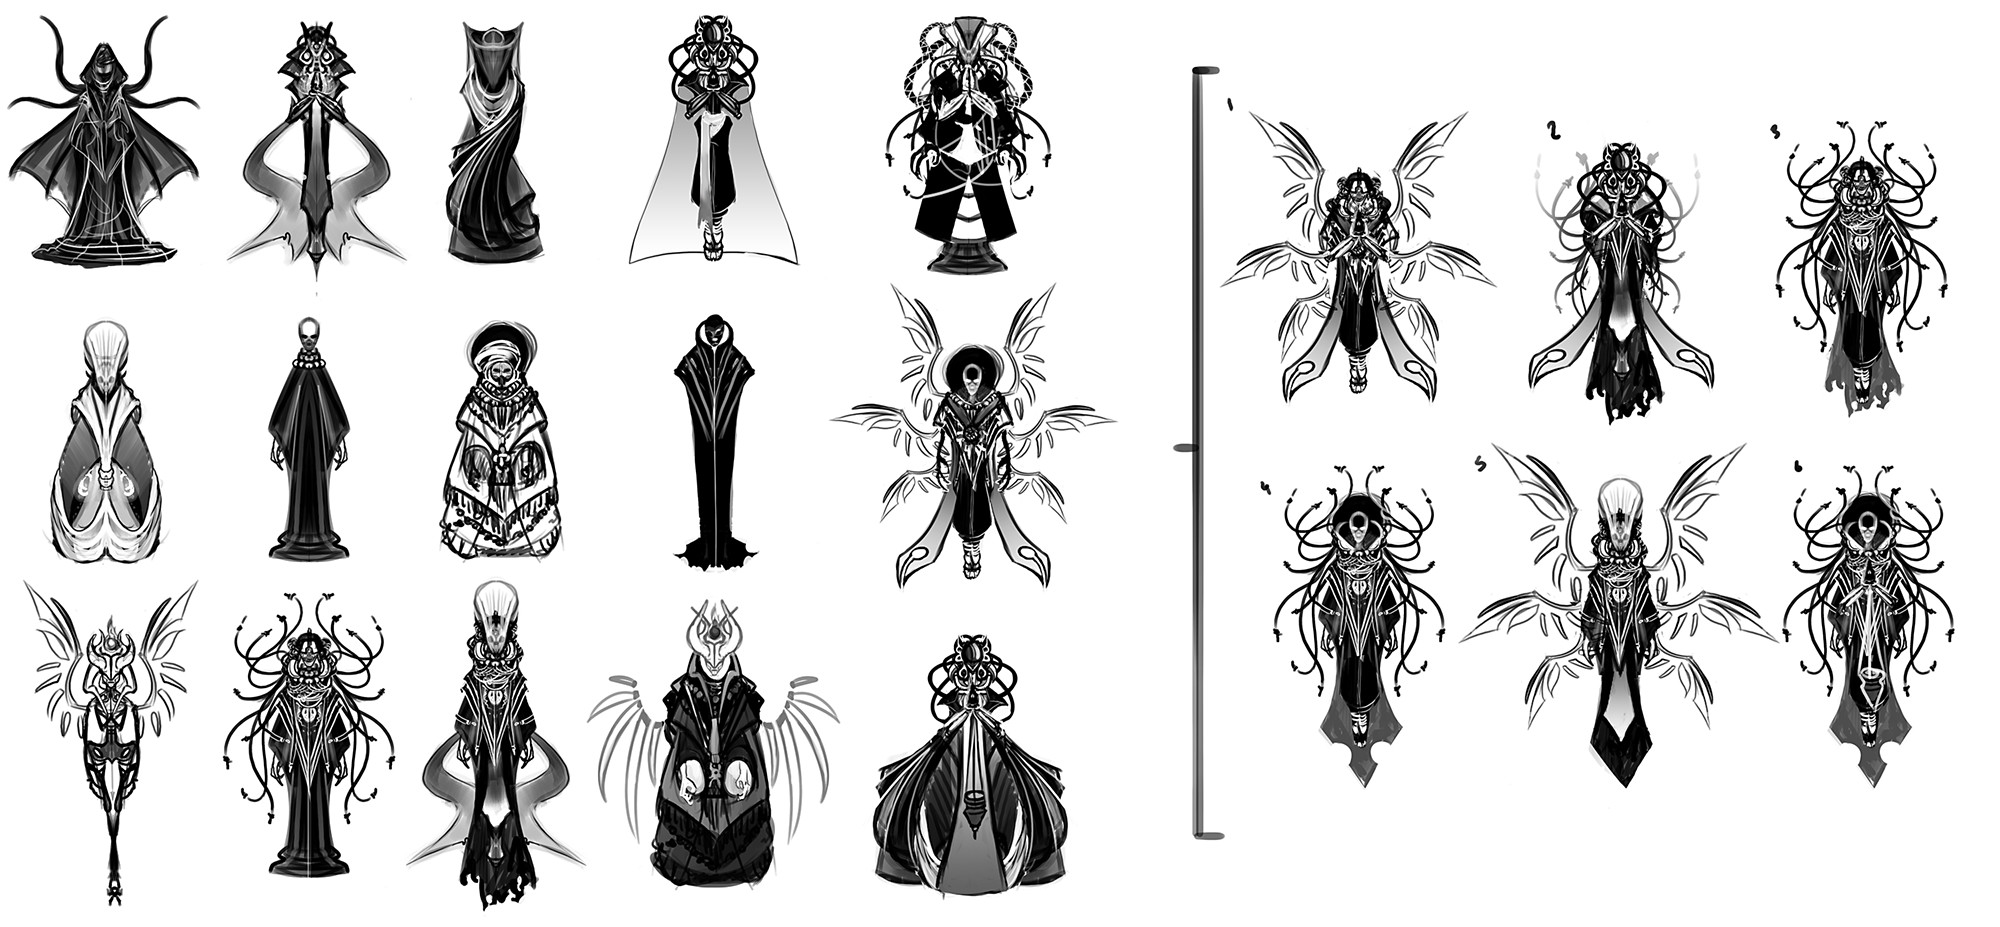 Thumbnails to show the design process behind the final illustration.